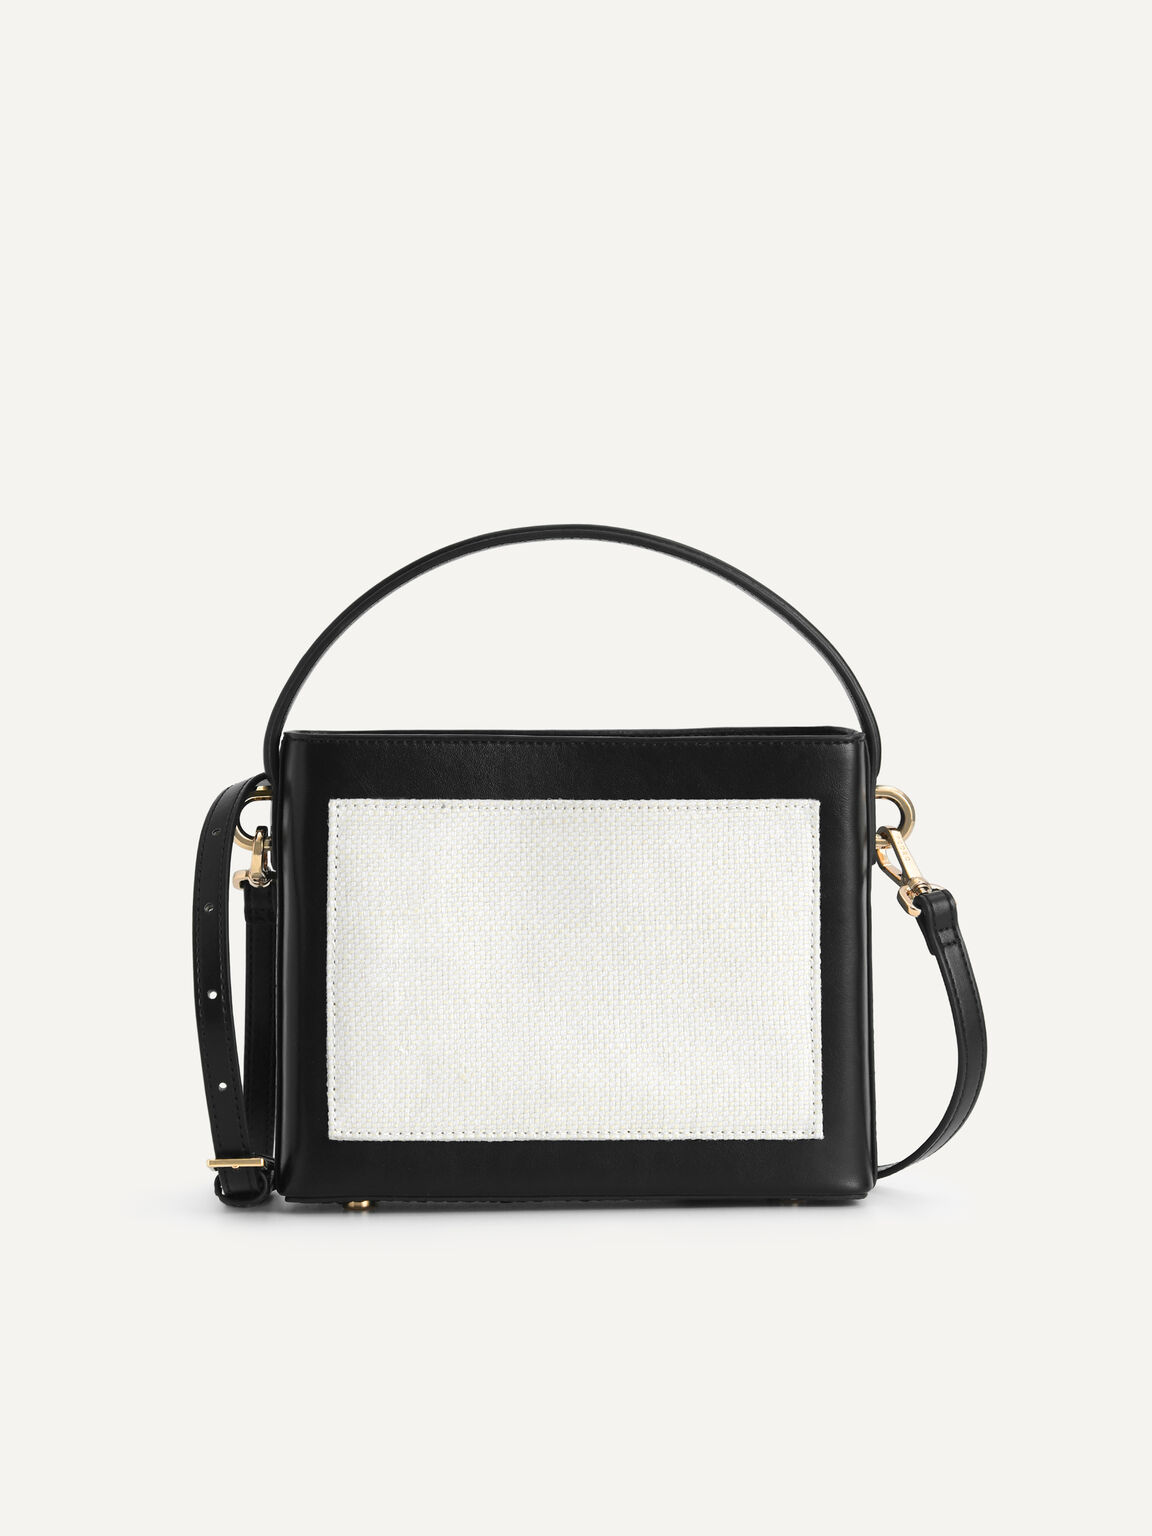 Boxy Top Handle with Braided Strap, Black, hi-res